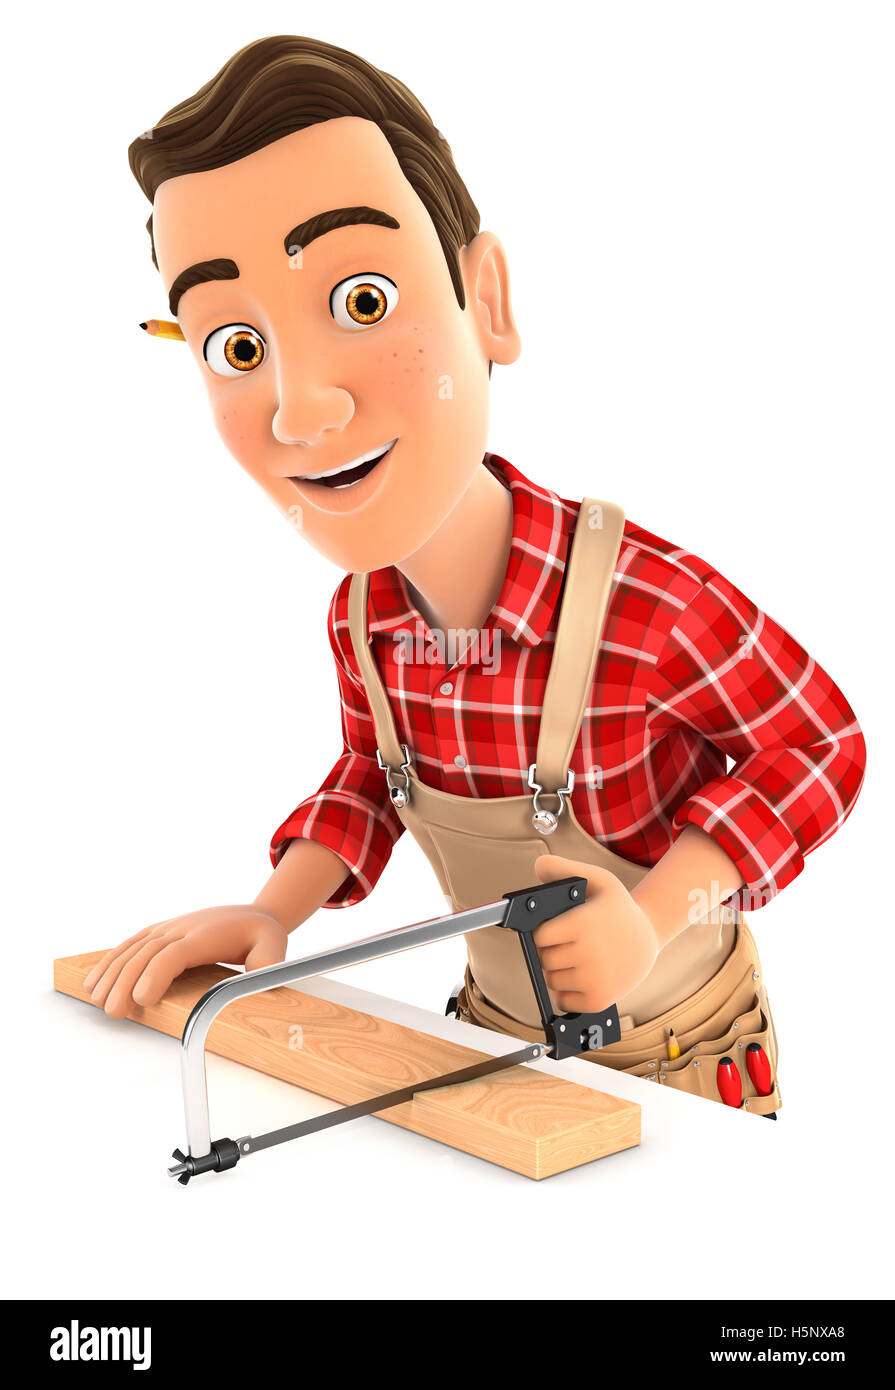 3d handyman sawing wooden plank, illustration with isolated white background Stock Photo